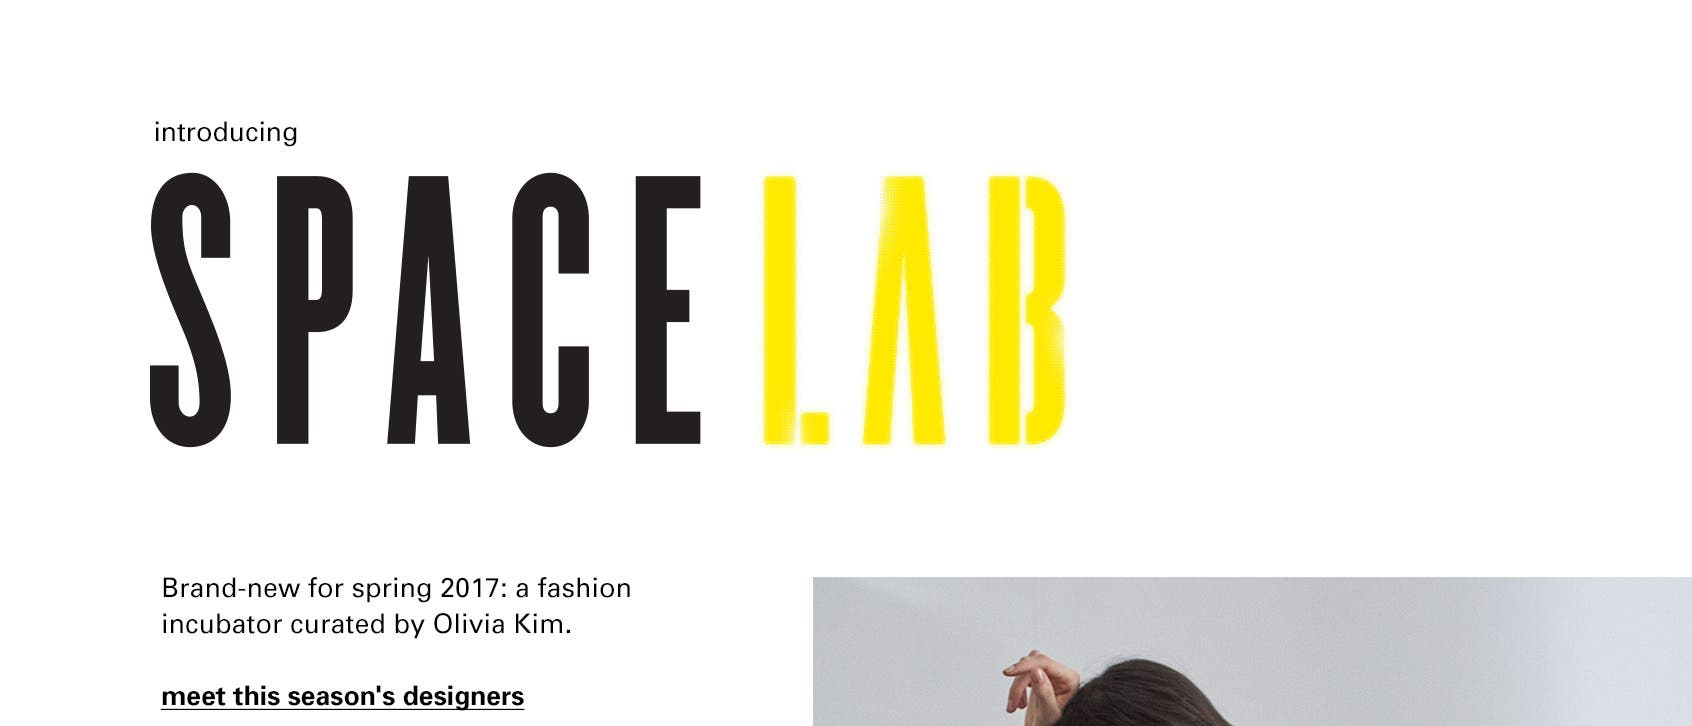 Introducing SPACE Lab, a fashion incubator curated by Olivia Kim.